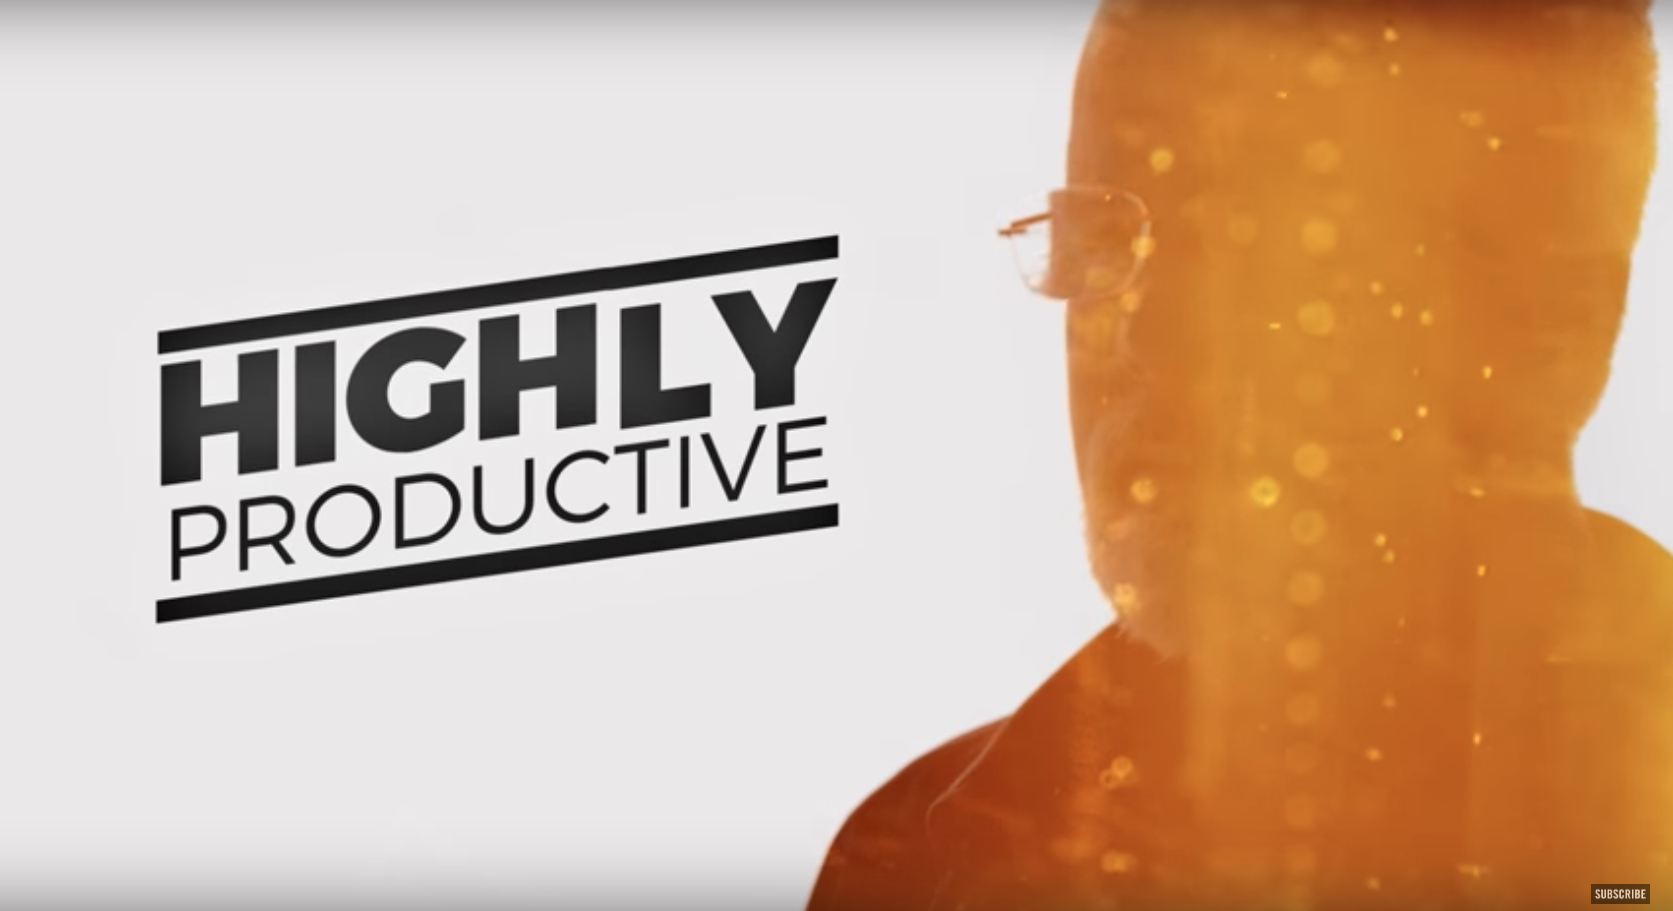 Marijane's original series - Highly Productive . Location Sound, Sound Design & Audio Post-Production by Jack. (Prod.) Wrong Creative.